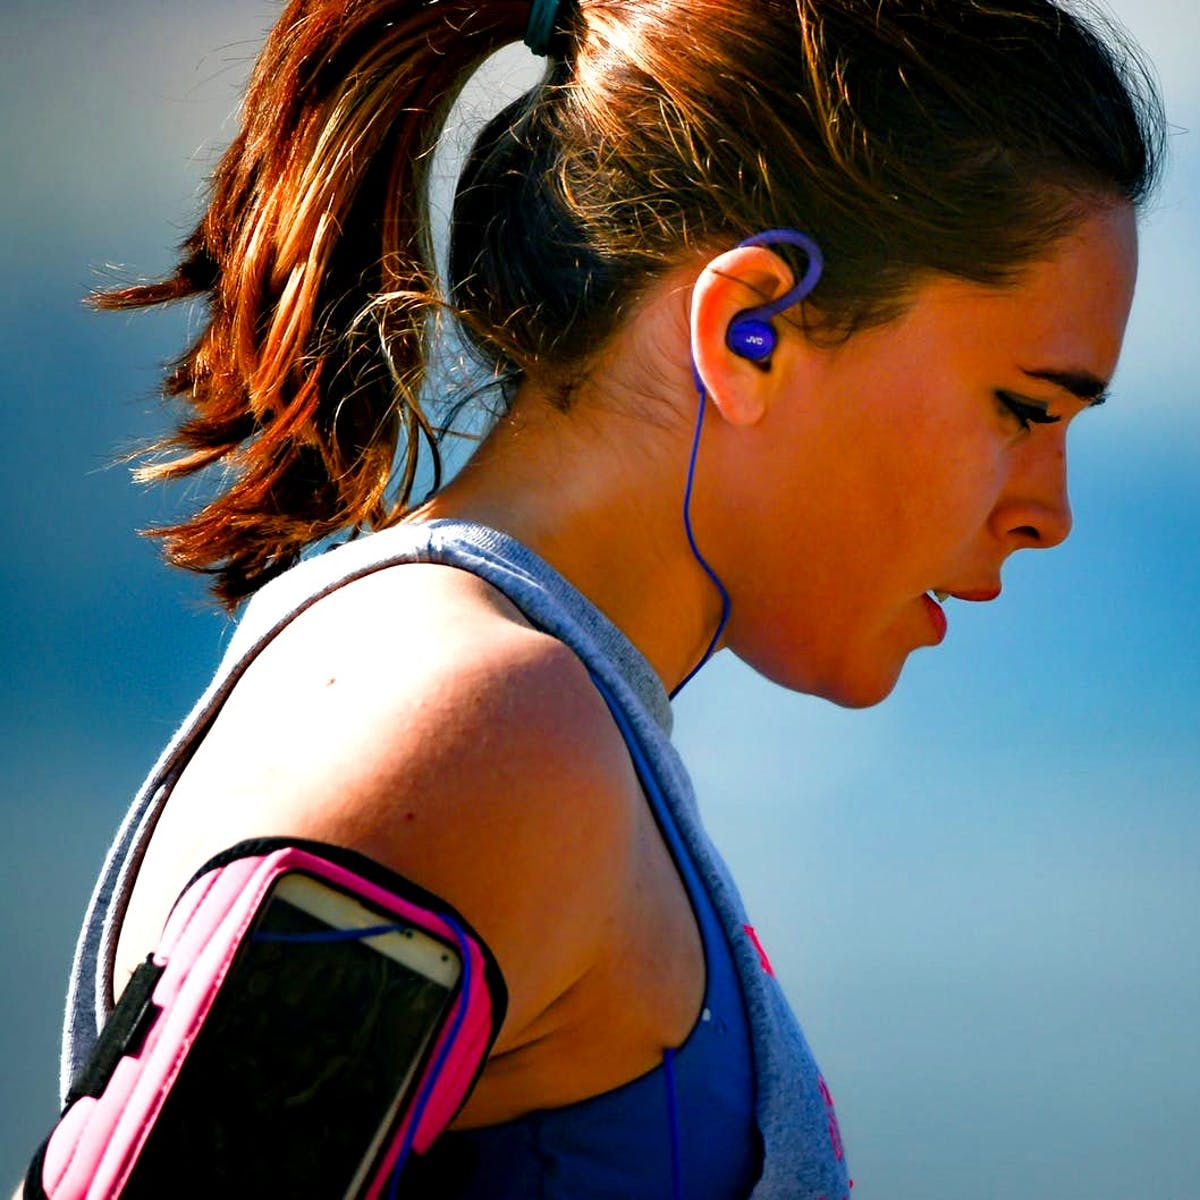 Exercise Music: 3 Songs Scientifically Shown to Increase Work-Out Enjoyment